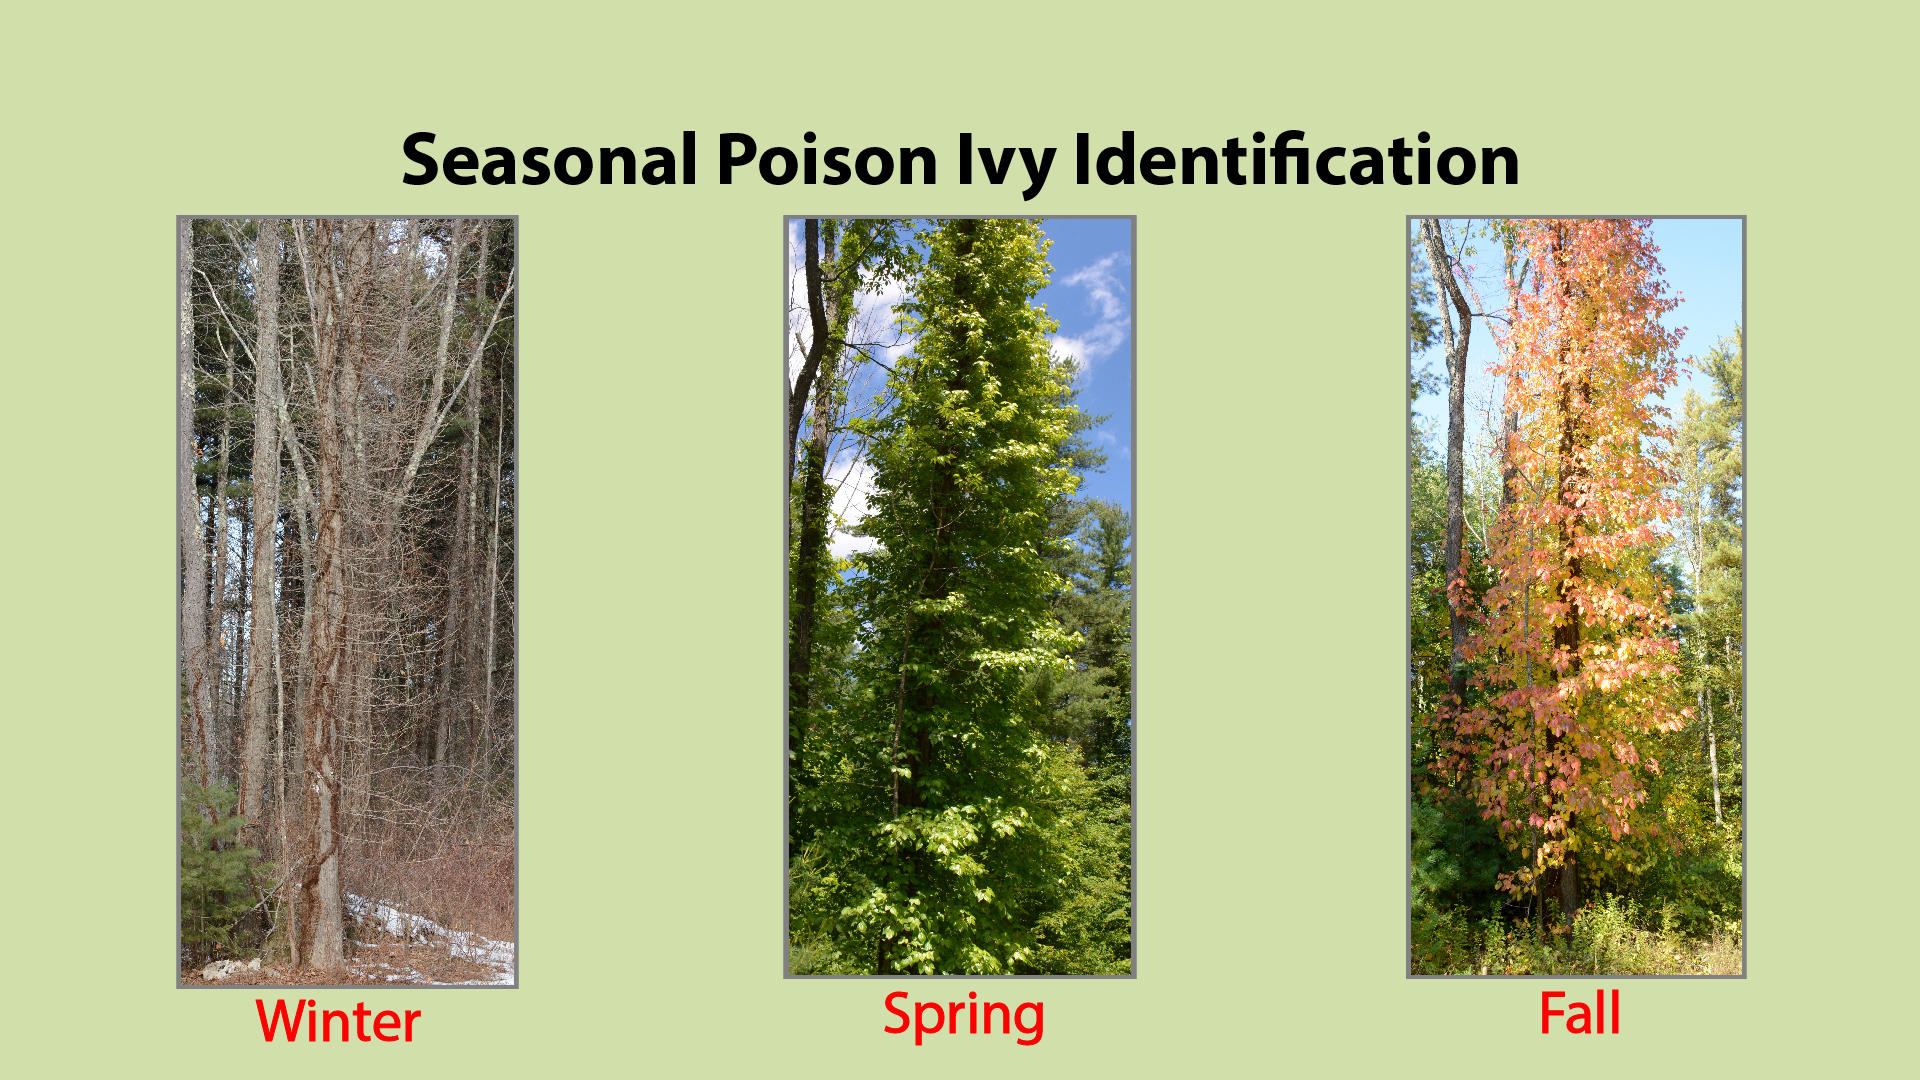 Poison Ivy Throughout the Seasons